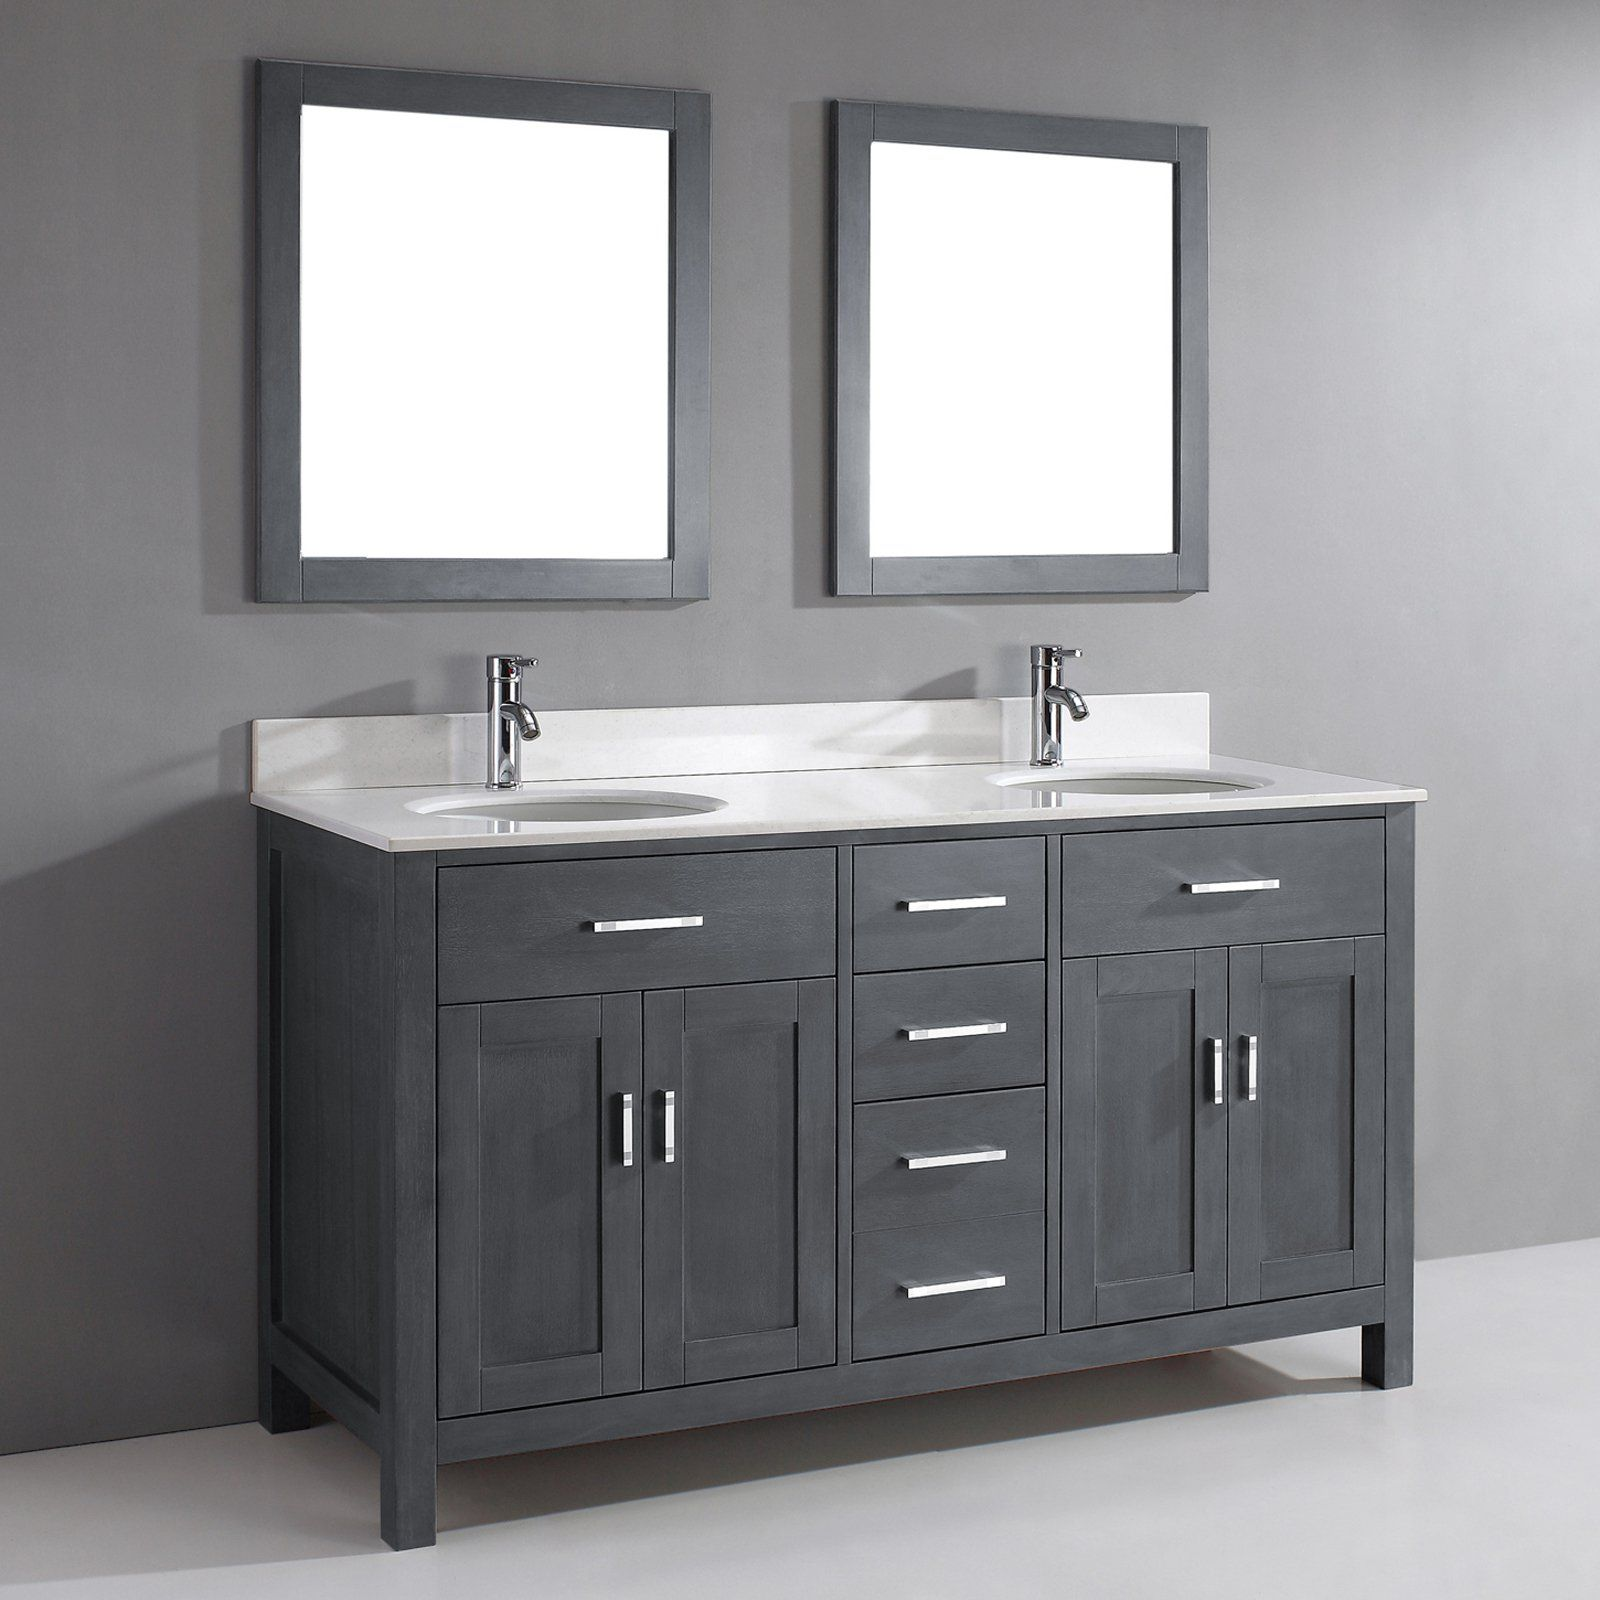 Bauhaus Bath Celize 63 In Double Bathroom Vanity Set With Mirrors